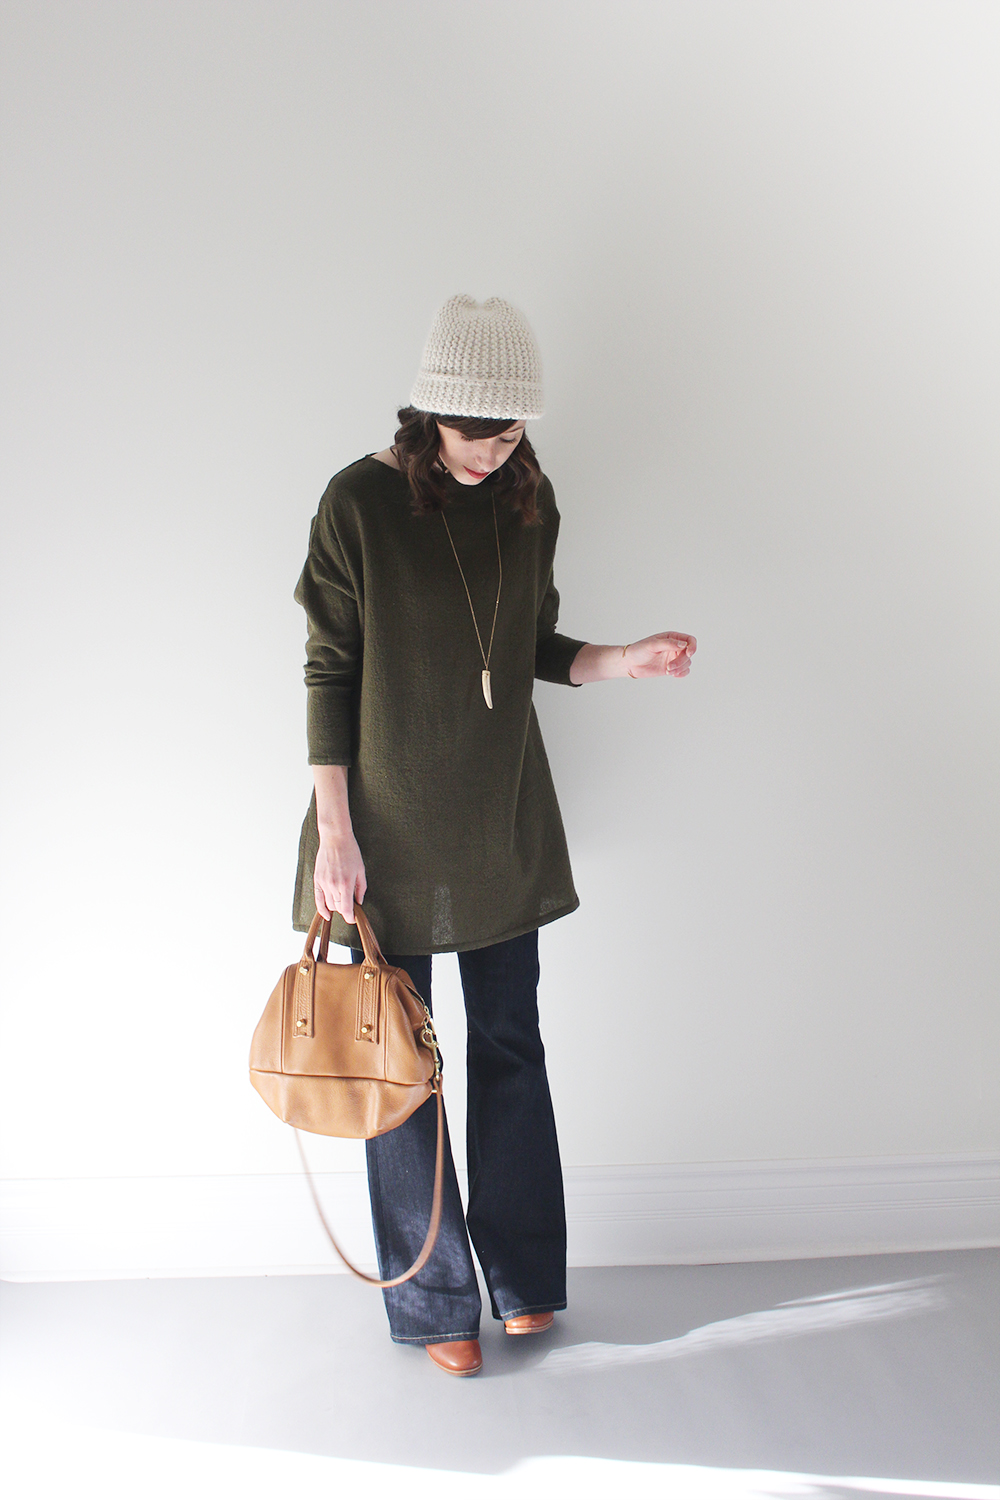 Style Bee - Fall - Look 7